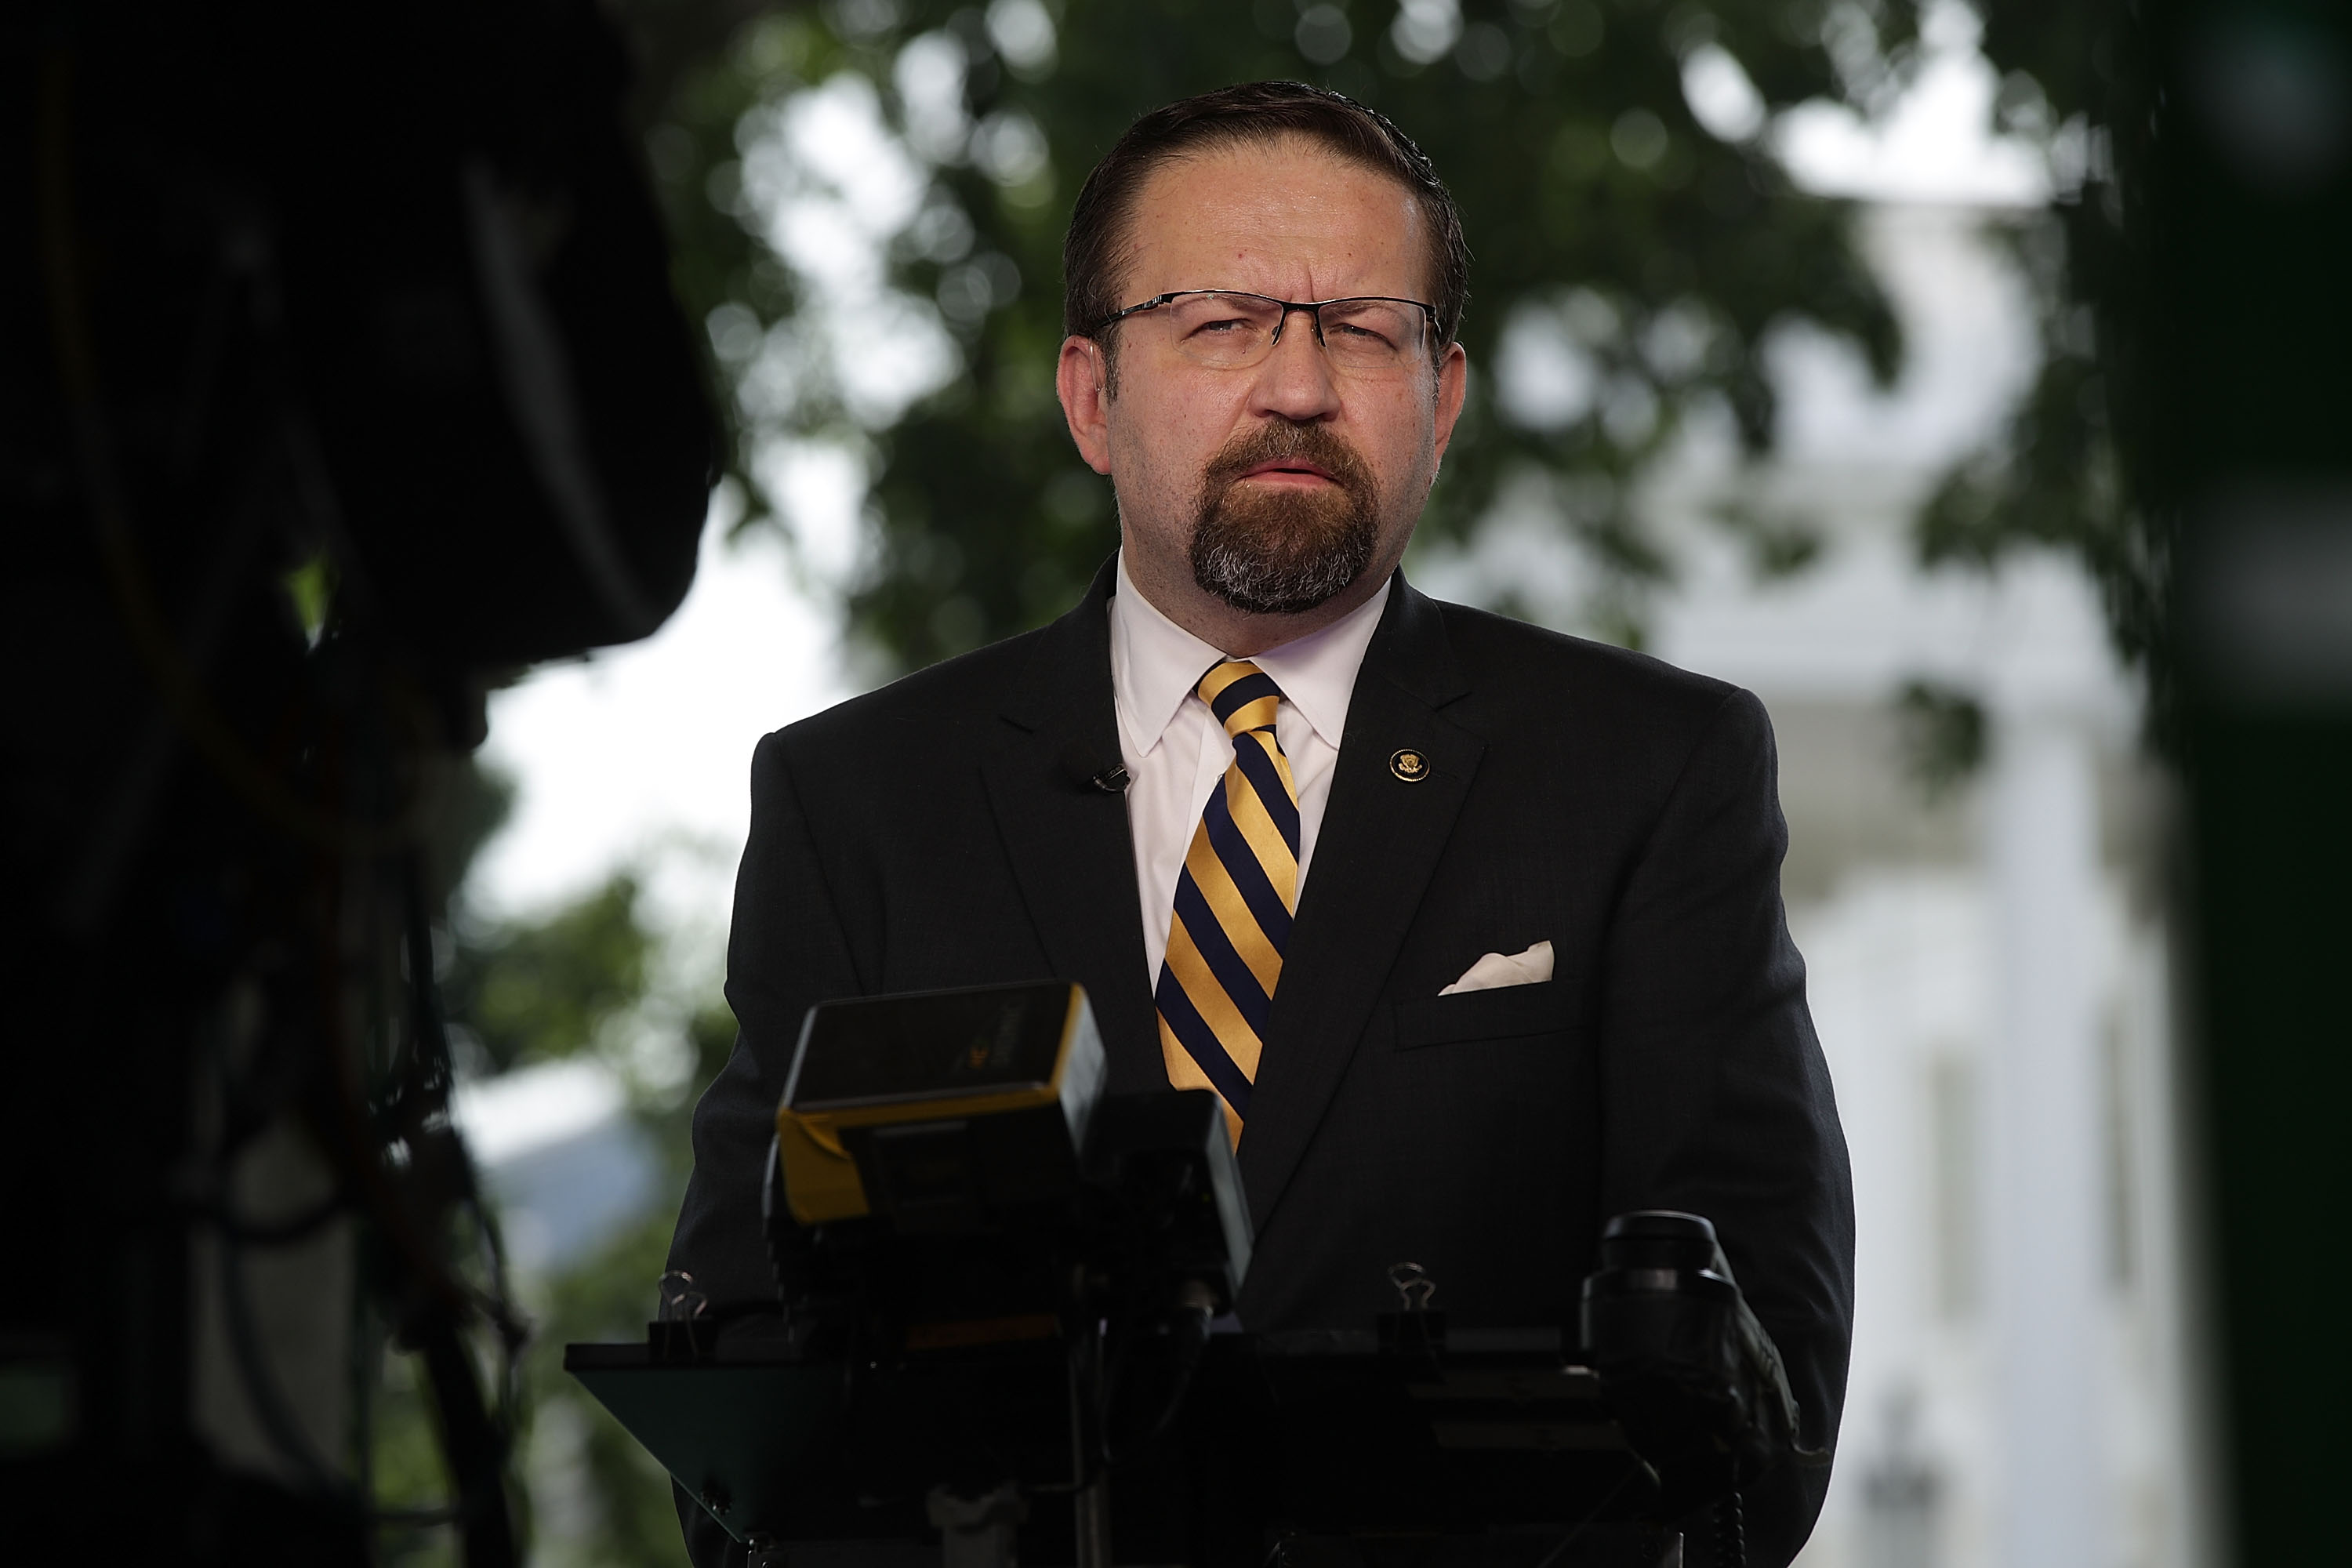 Former White House Deputy Assistant to the president Sebastian Gorka left the White House in 2017. (Photo by Alex Wong/Getty Images)